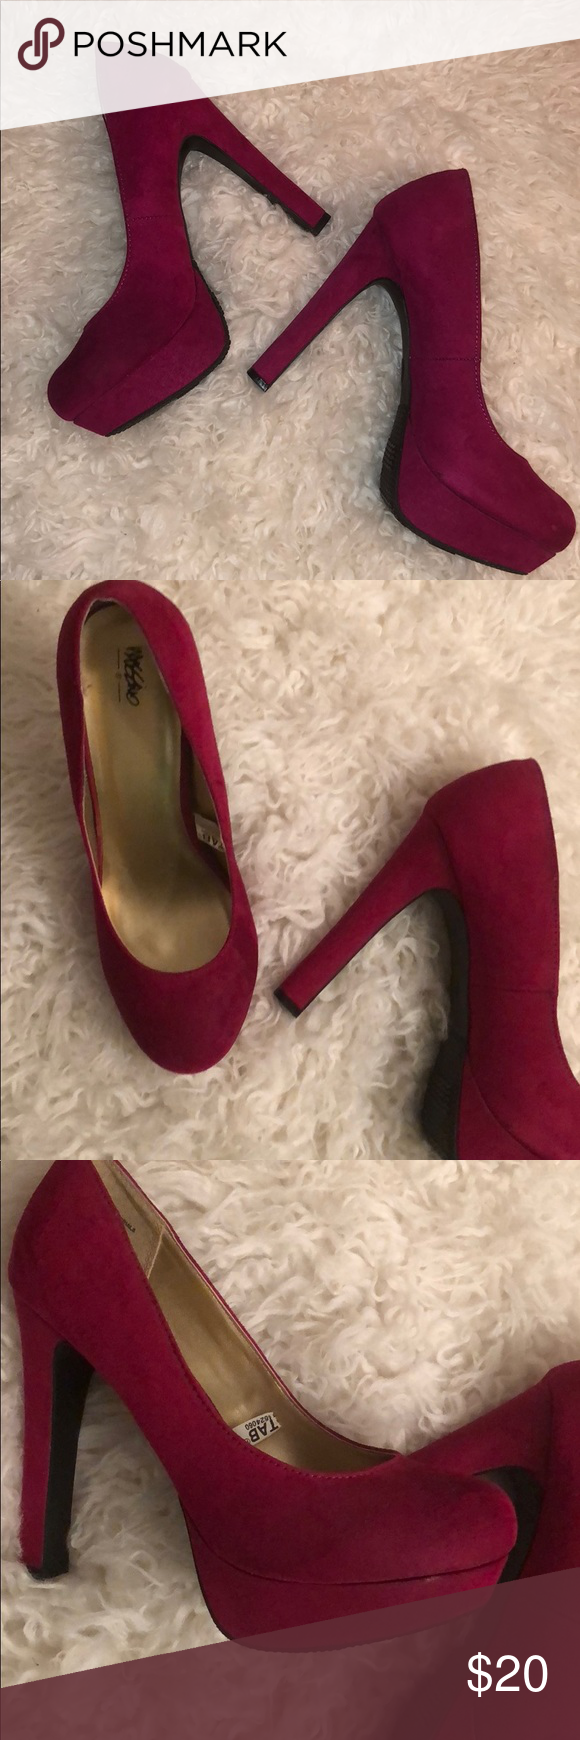 Never worn magenta heels Magenta fuschia colored heels with a platform on  the front which f51e4d56bdbe